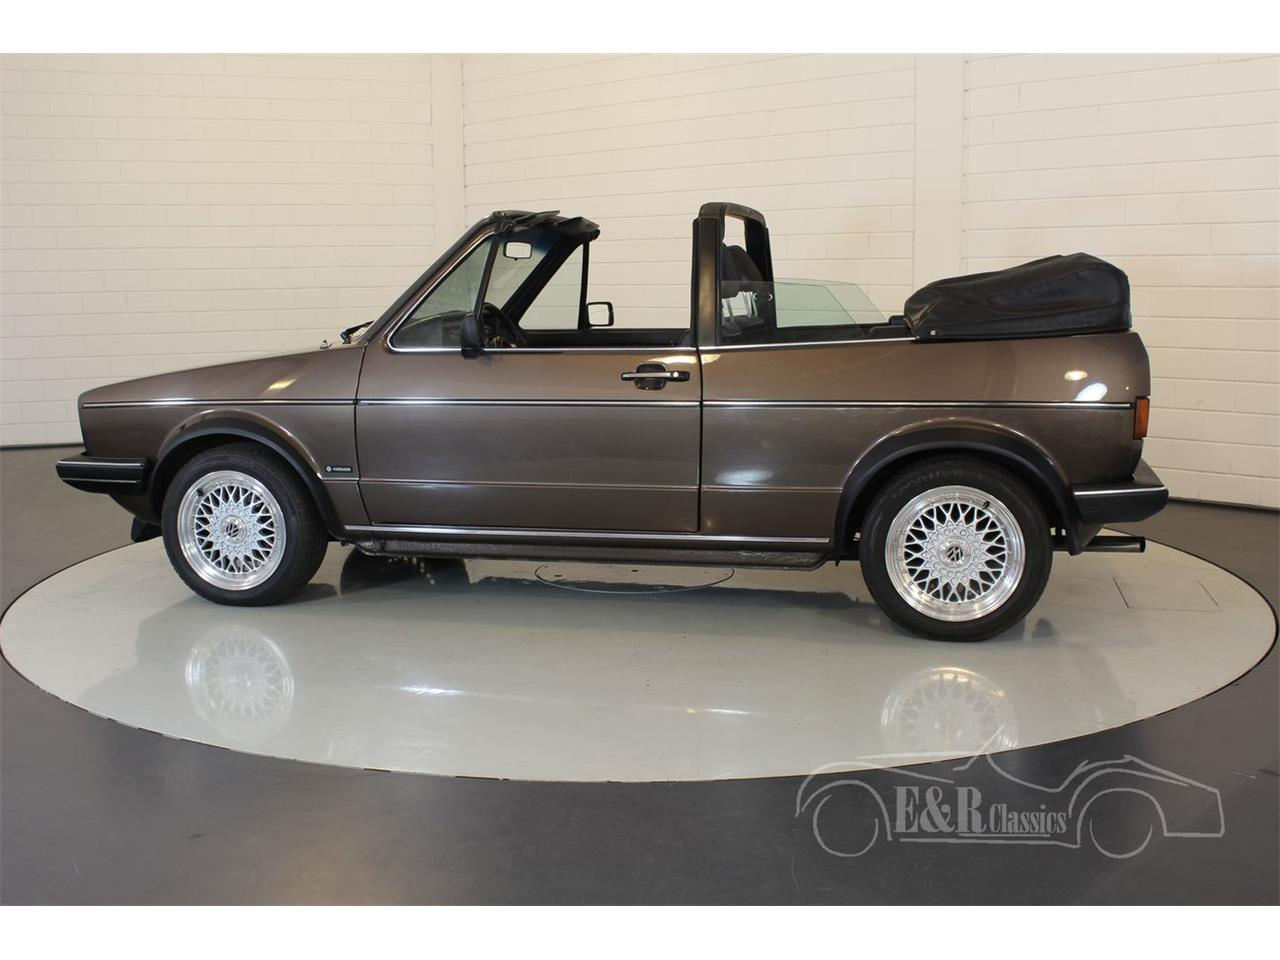 Large Picture of 1984 Volkswagen Golf located in - Keine Angabe - - $19,100.00 Offered by E & R Classics - PH4B